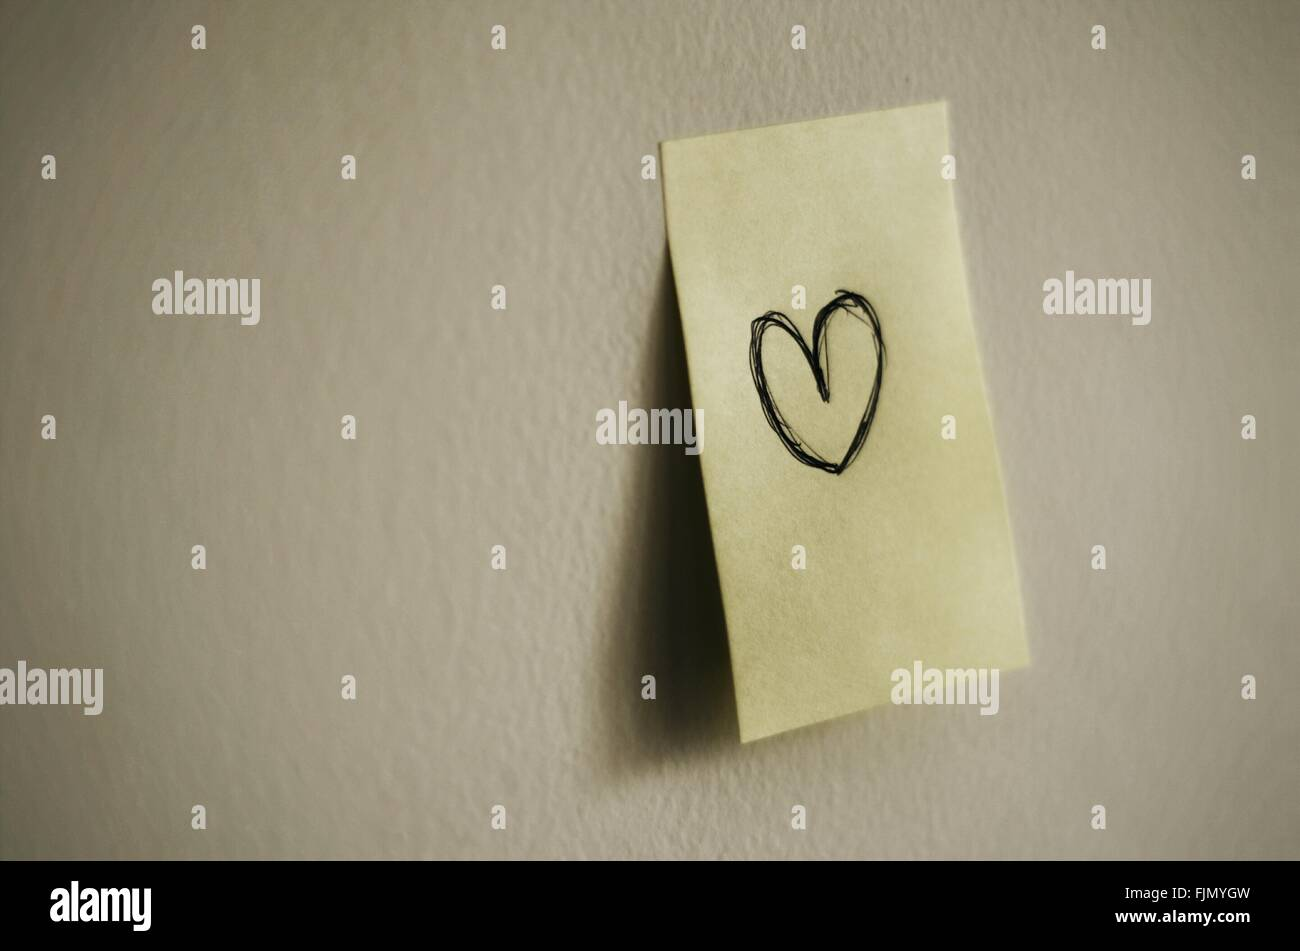 Close-up Of Adhesive Note With Heart Shape Stuck On Wall - Stock Image